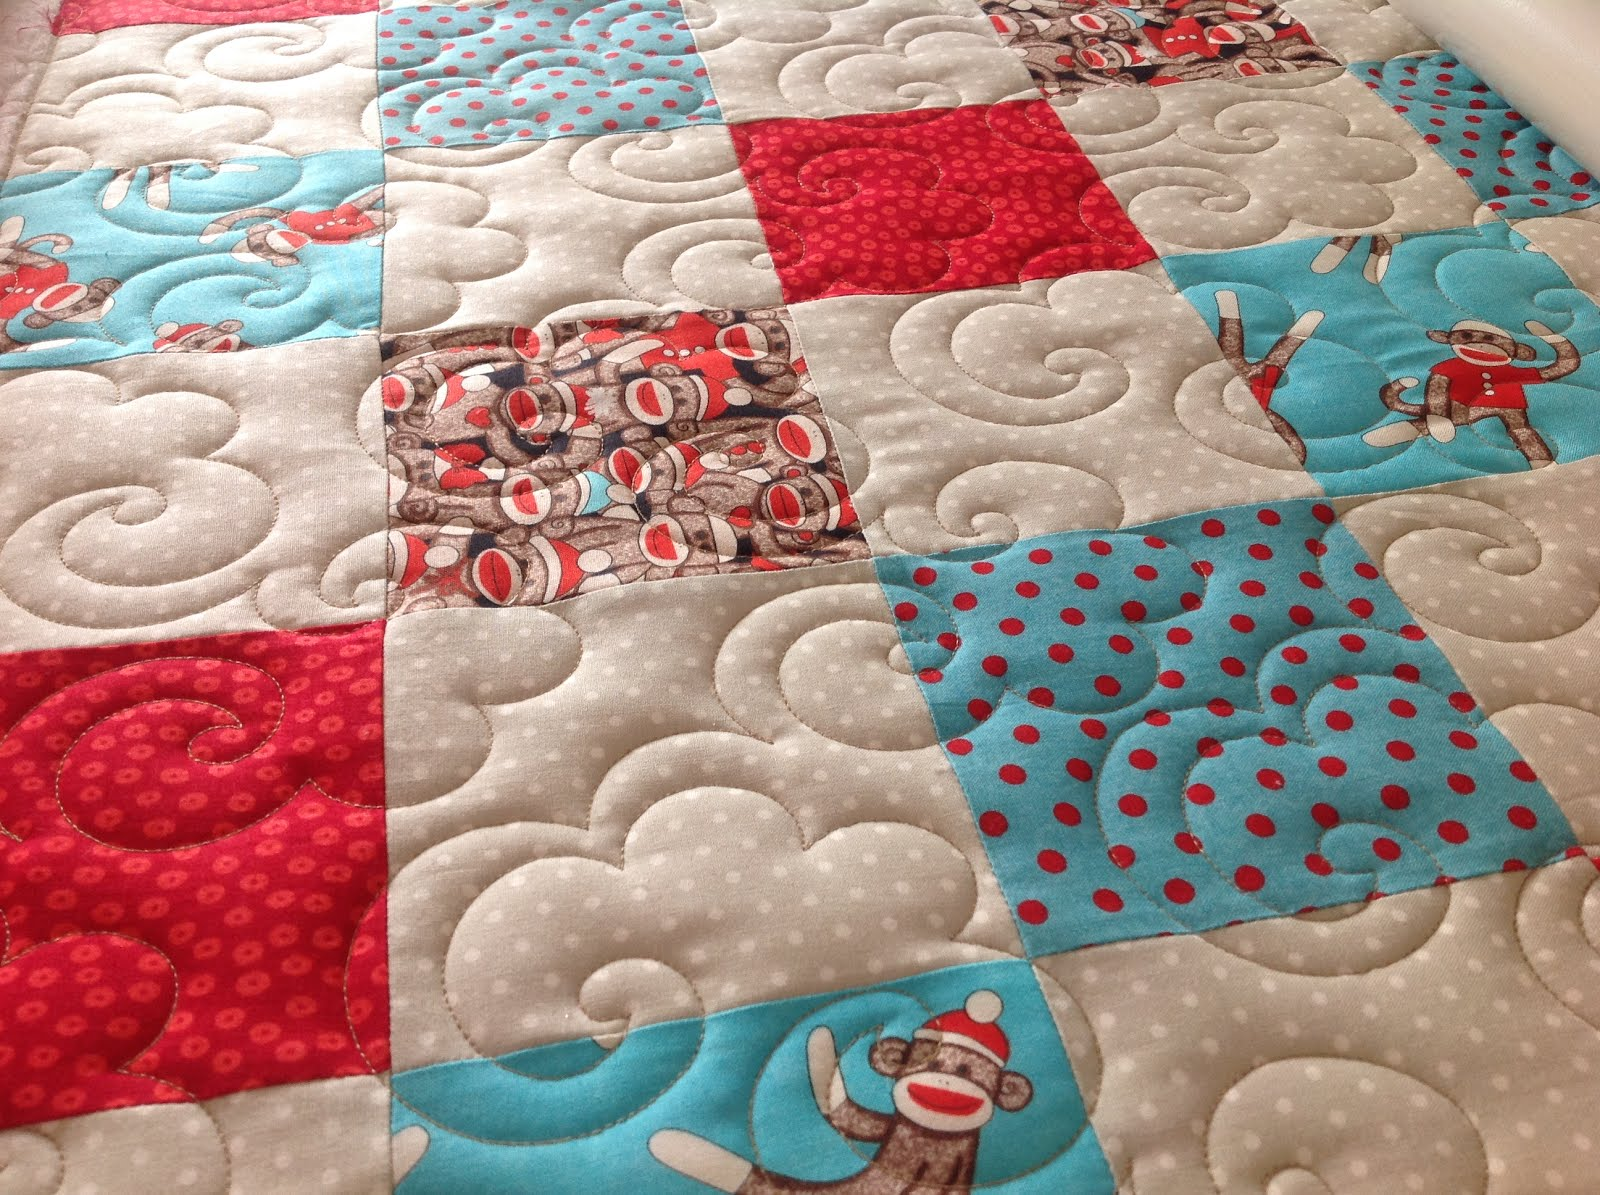 Fabadashery Longarm Quilting Little Caswell Quilt Made By